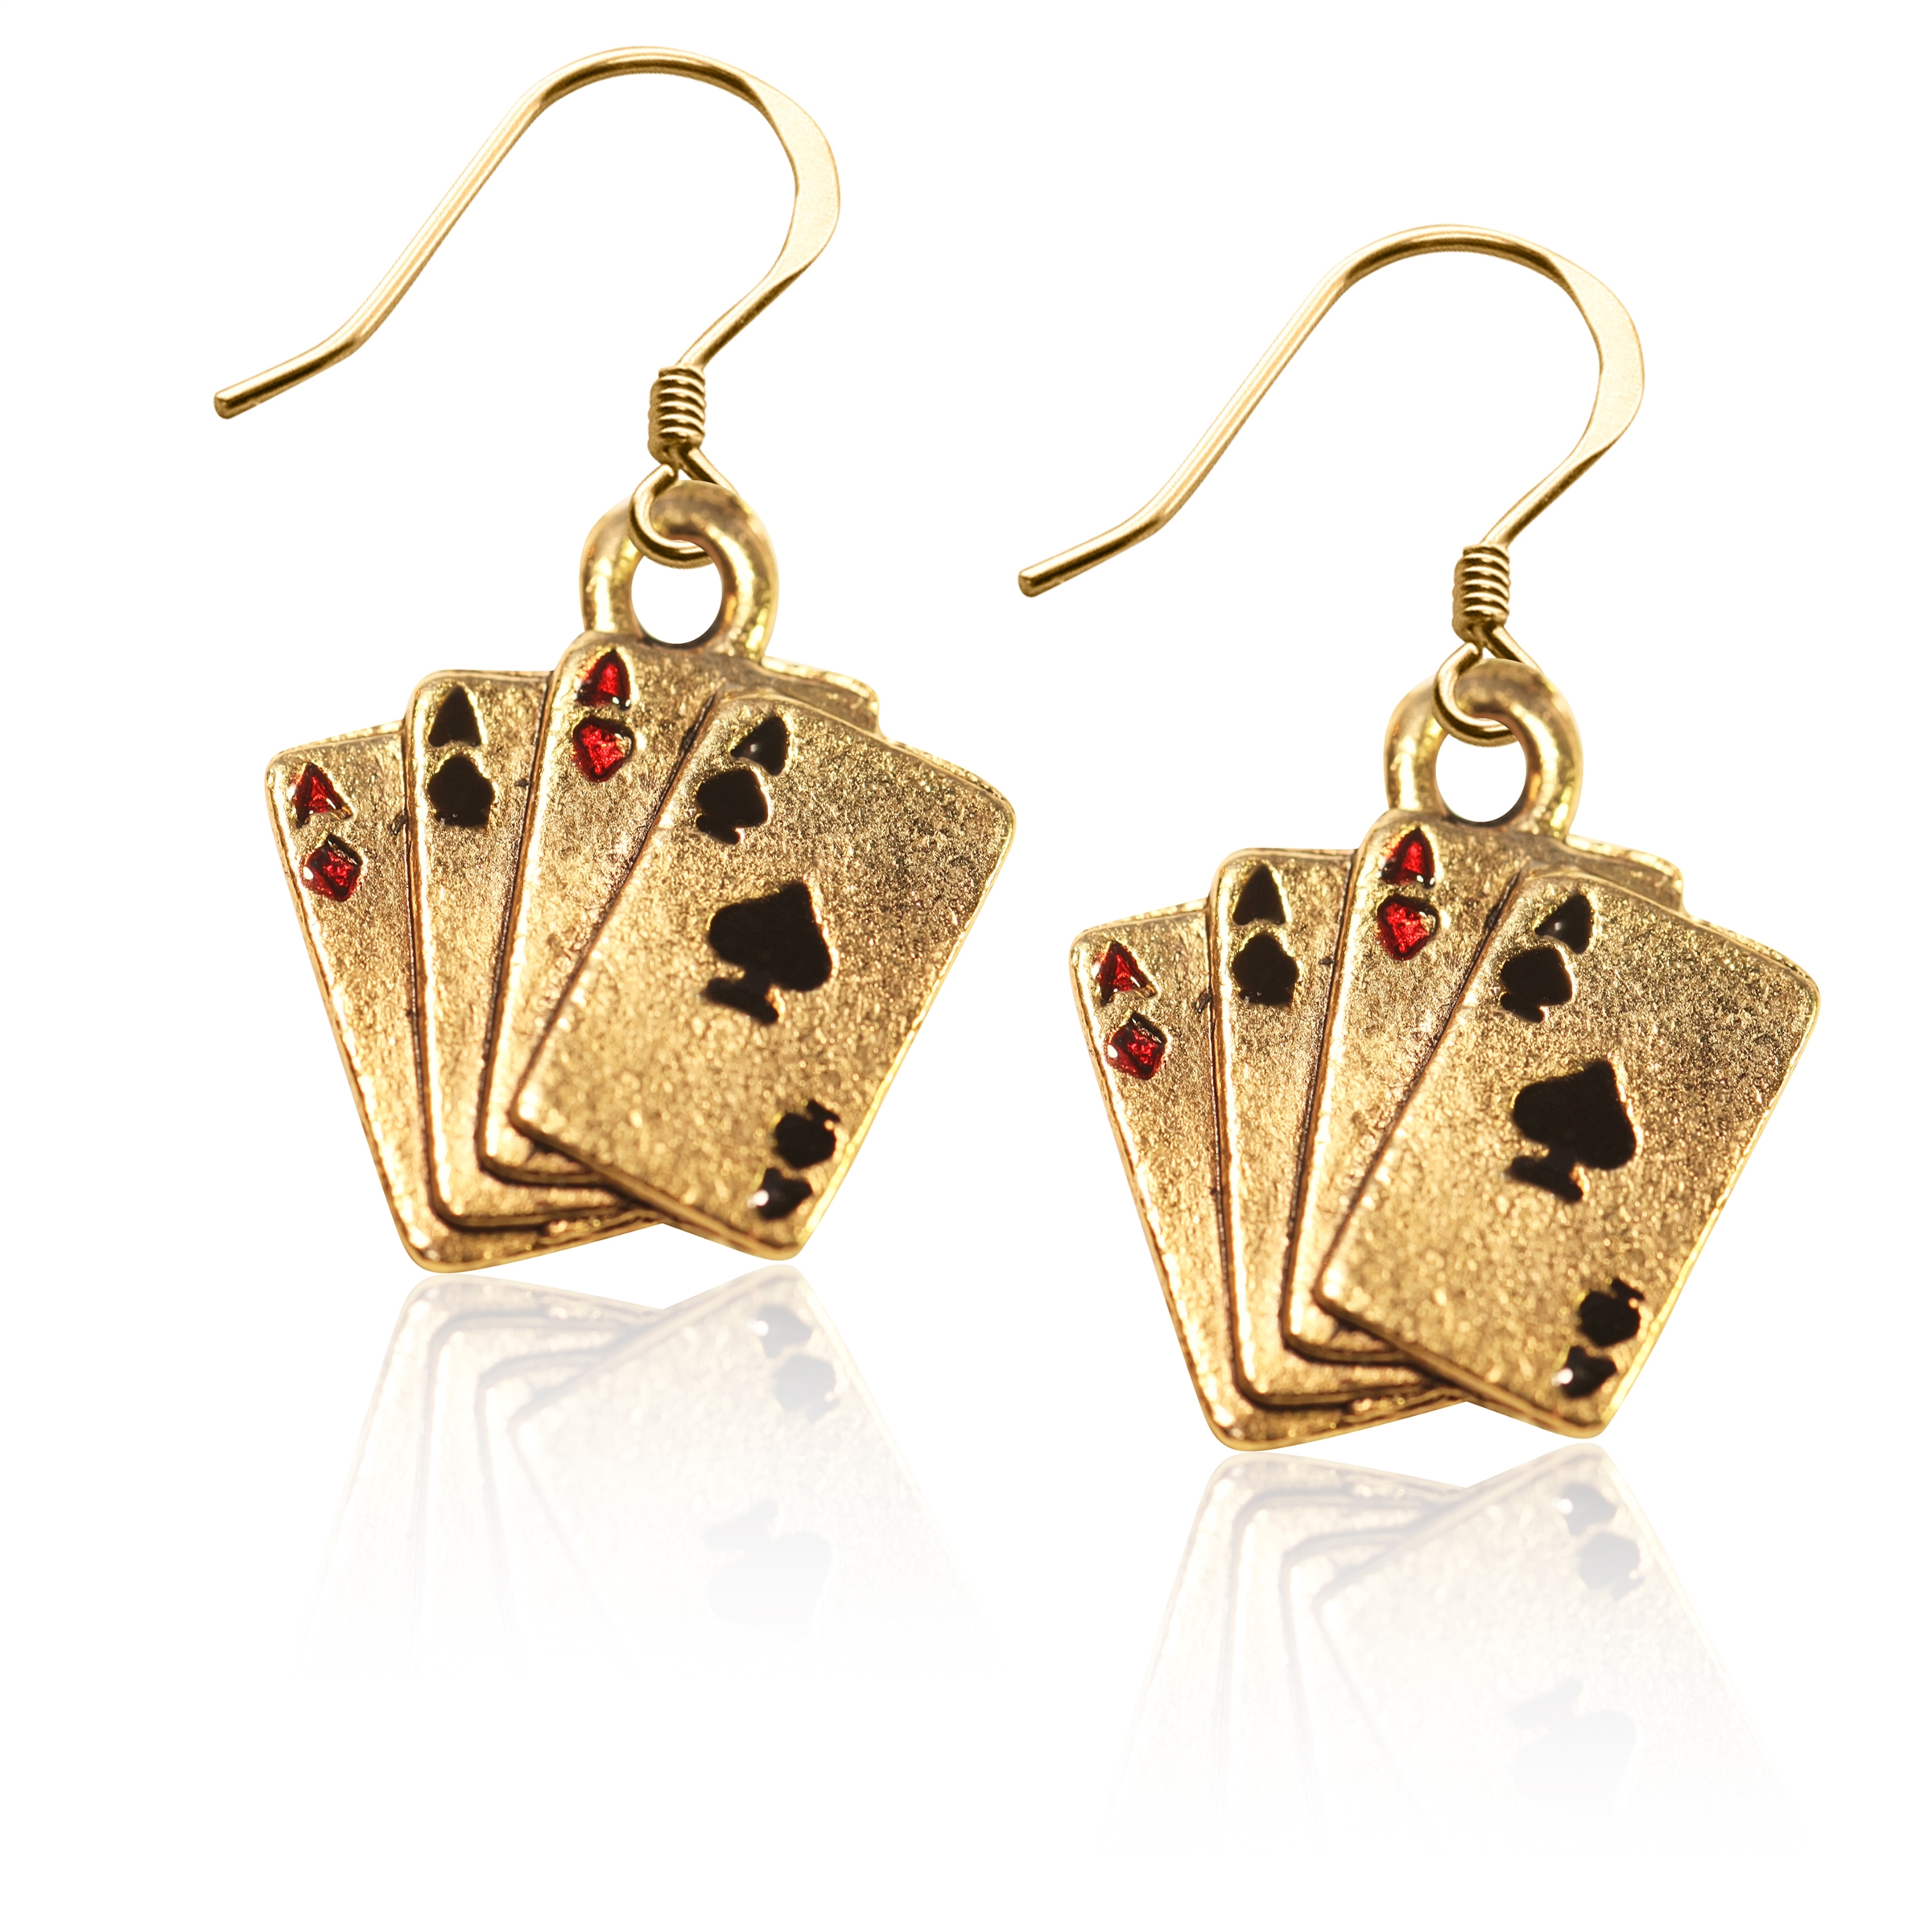 Image of Aces Charm Earrings in Gold